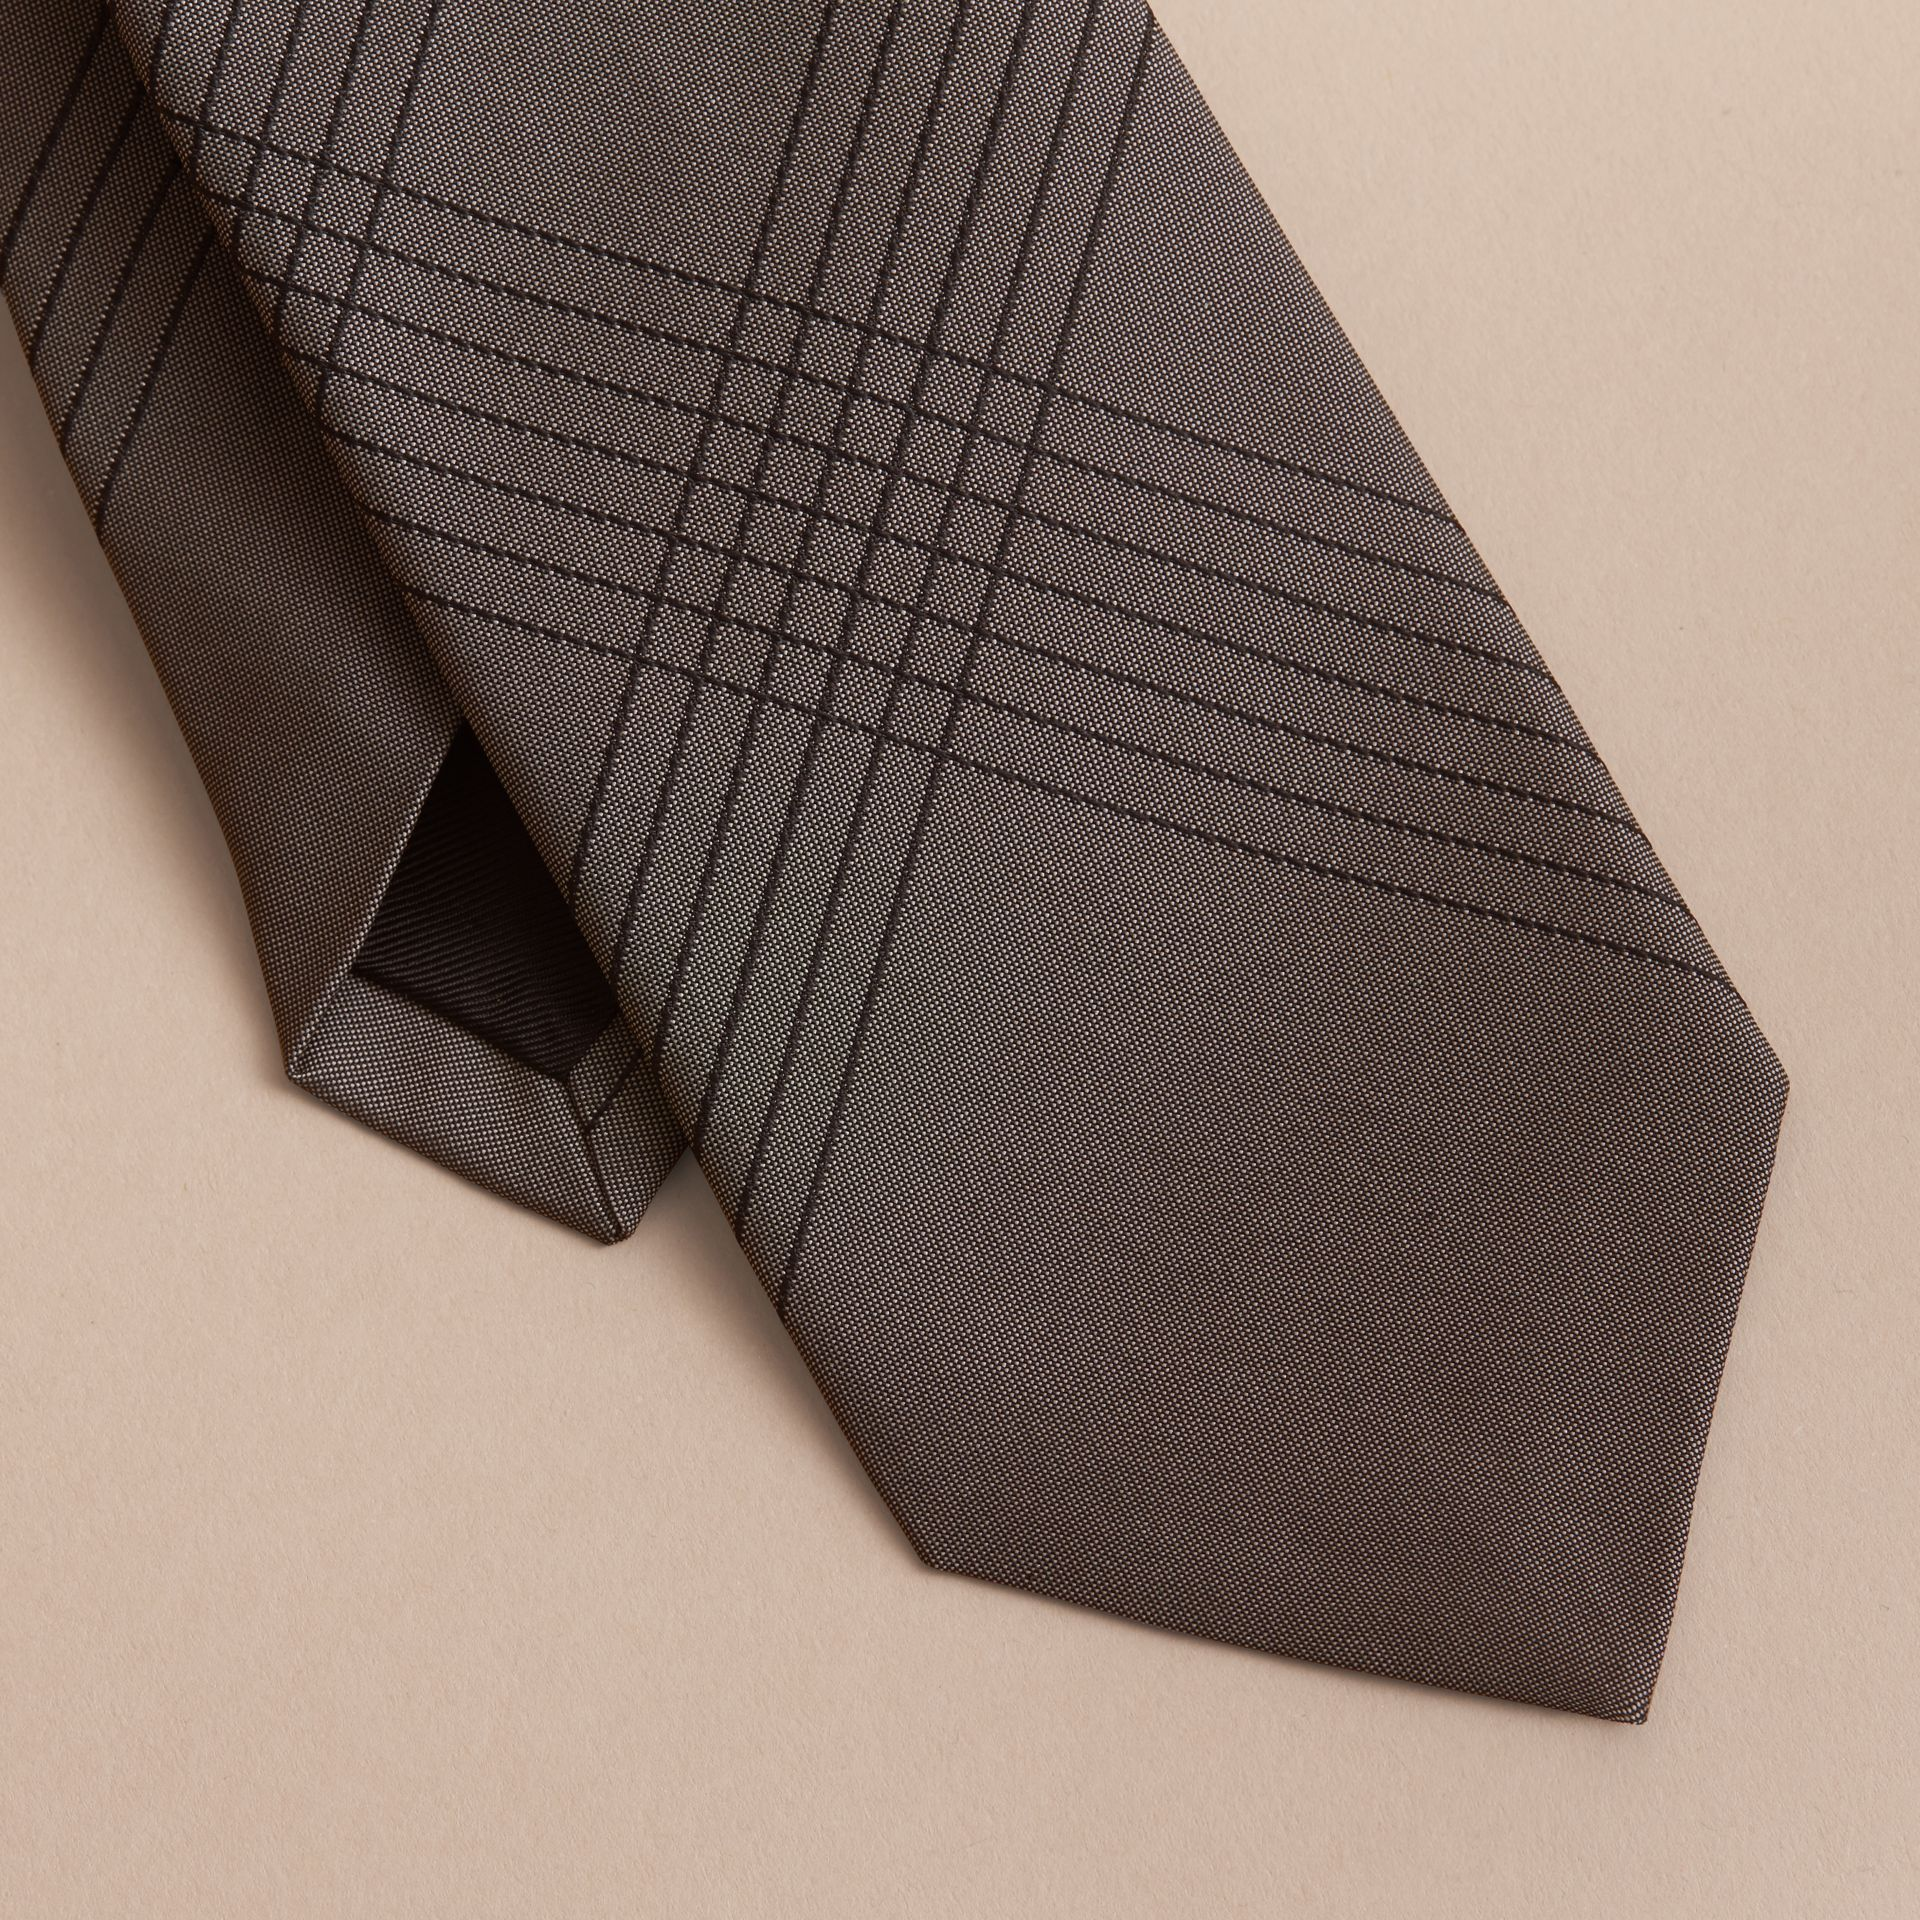 Modern Cut Topstitched Check Silk Tie in Green Grey - Men | Burberry Australia - gallery image 2